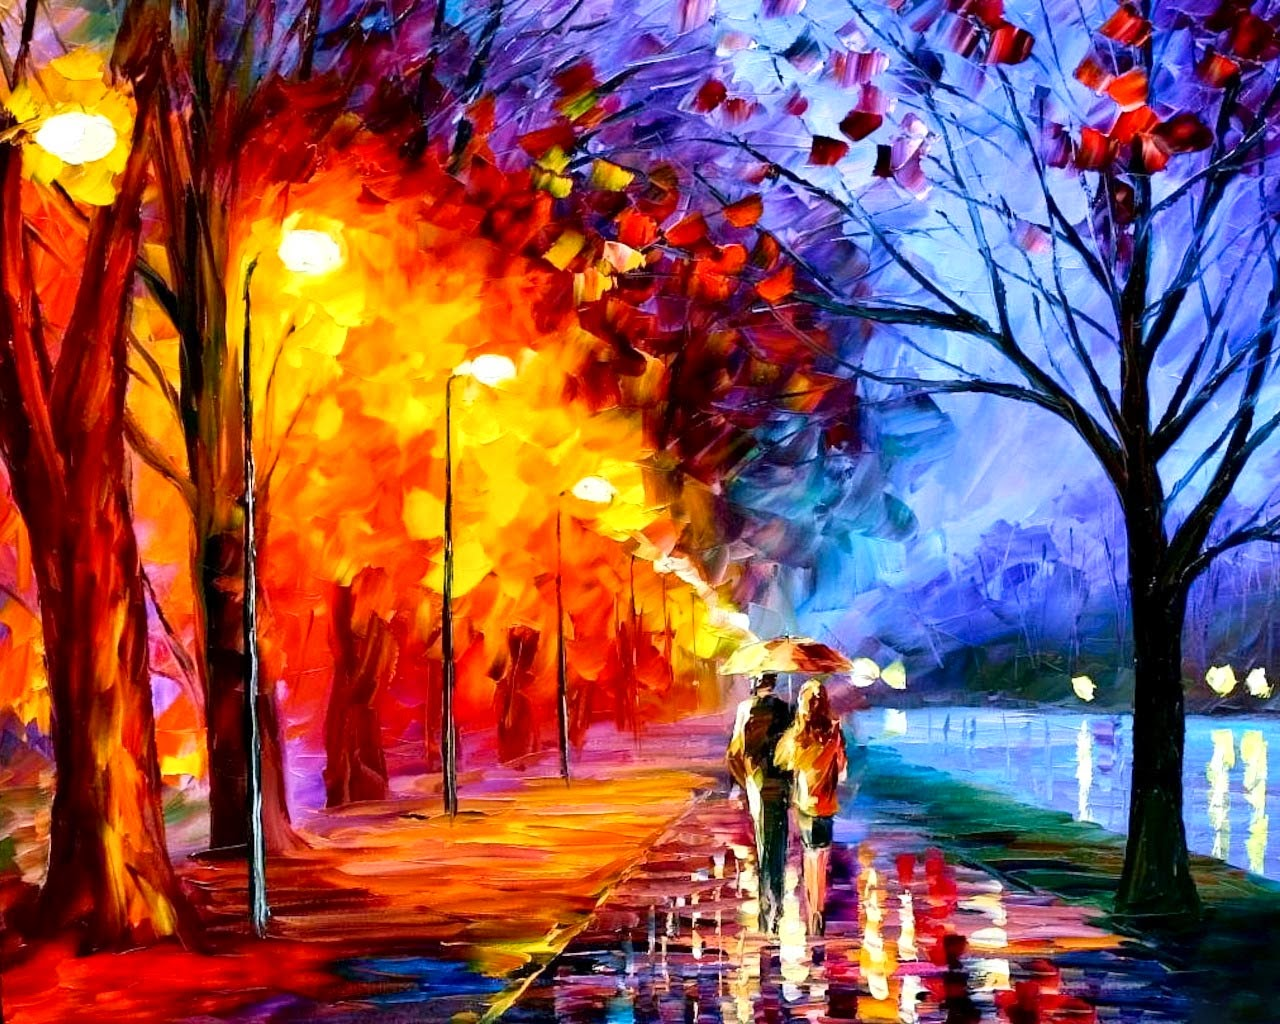 Tatoos Army Beautiful 3d Oil Painting For Desktop Hd Wallpapers